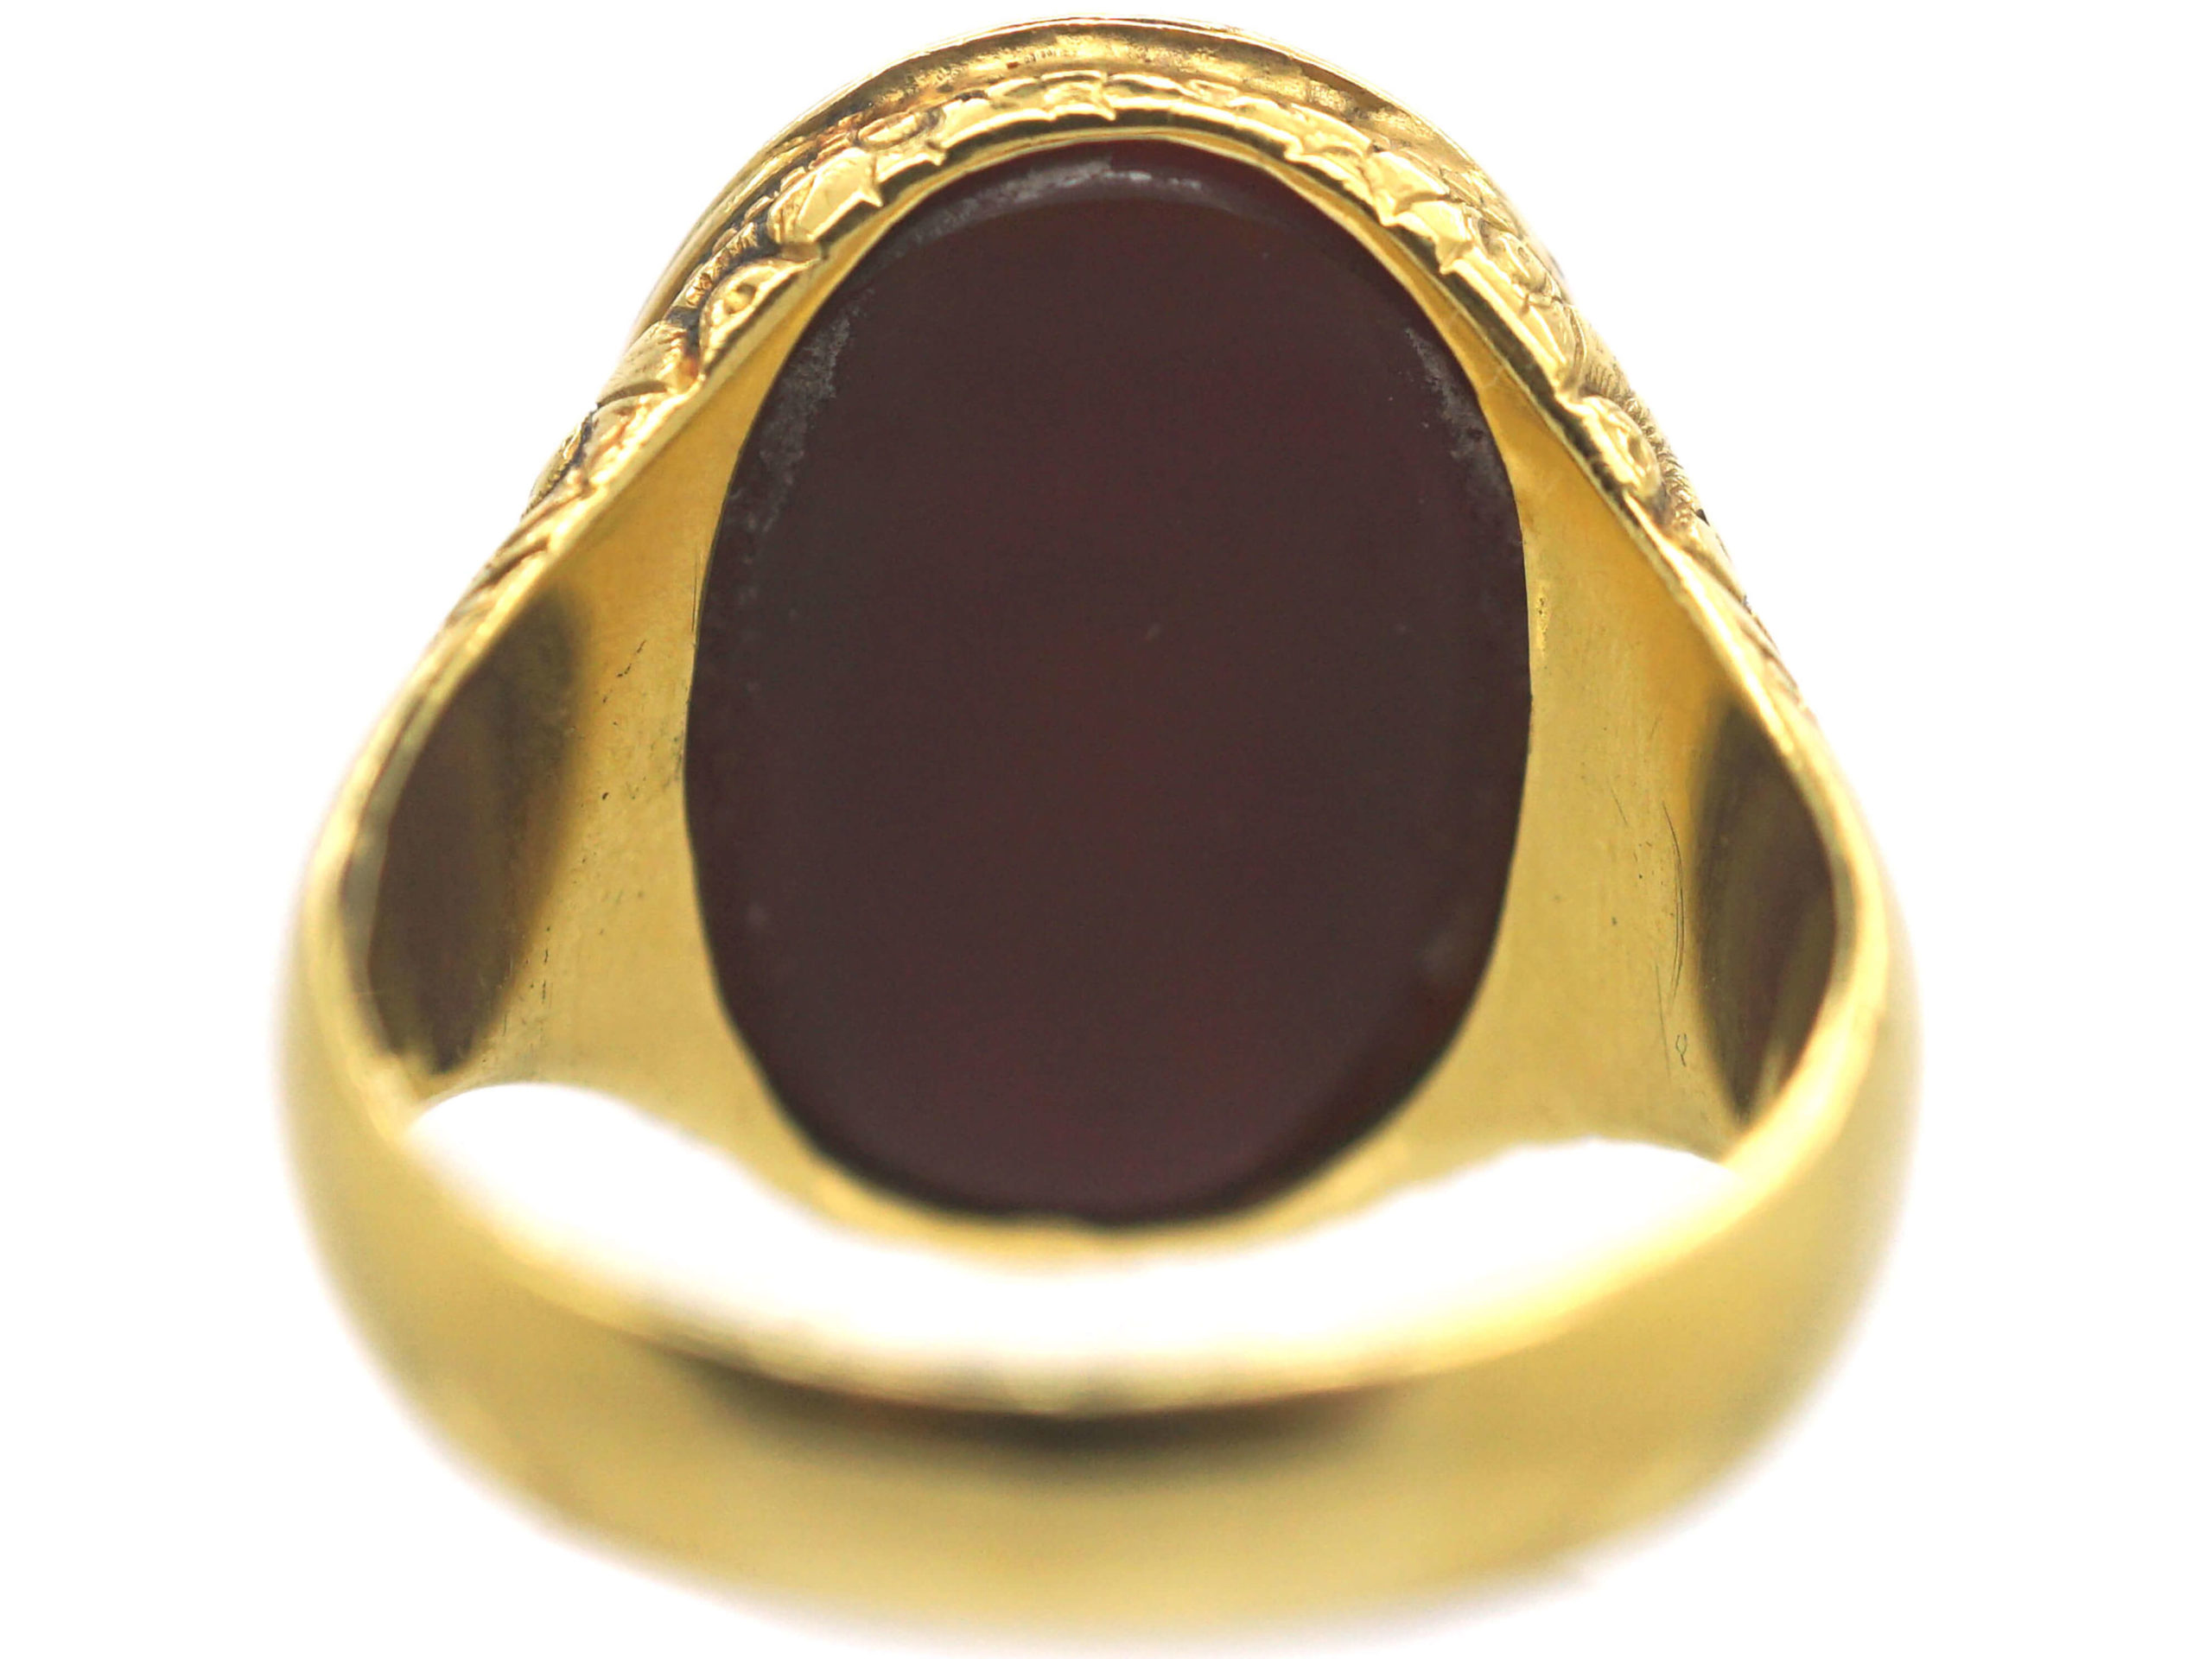 Victorian 18ct Gold Carnelian Intaglio of a Crest Signet Ring